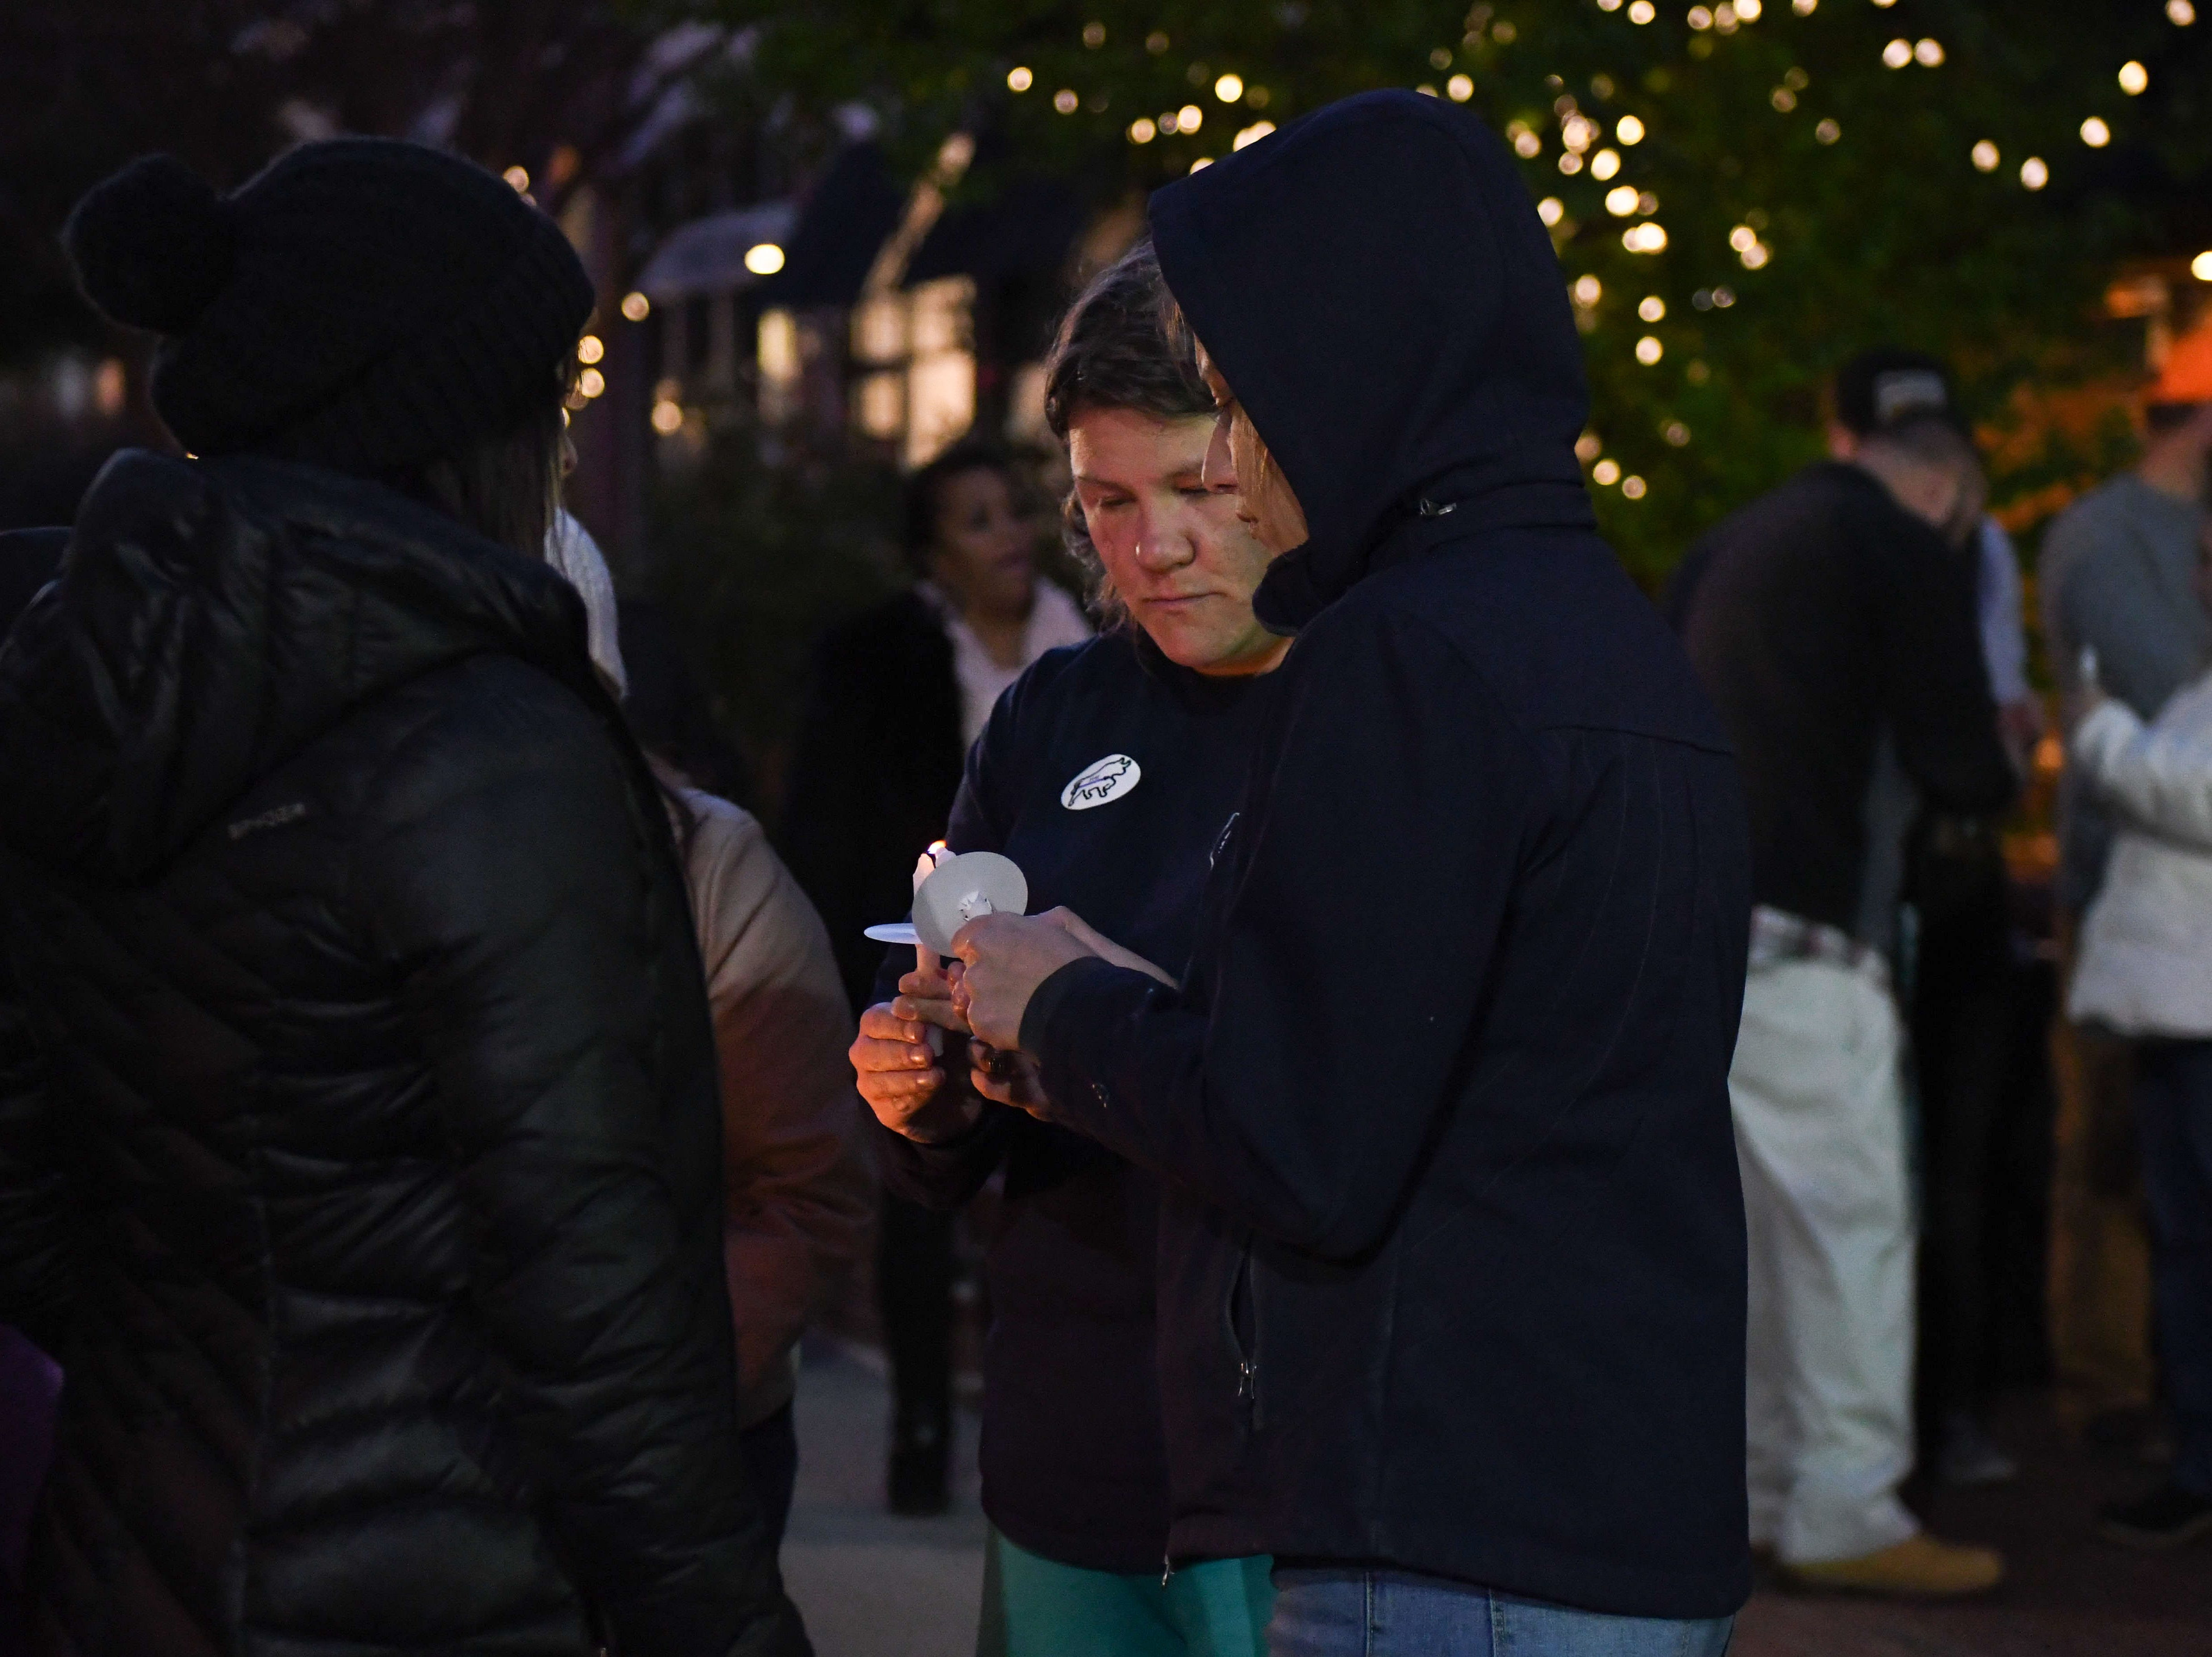 """Members of the community gathered for a memorial that was held to honor Salisbury Police Officer Aaron """"Bull"""" Hudson who died unexpectedly while off duty on Tuesday, Nov. 20, 2018."""